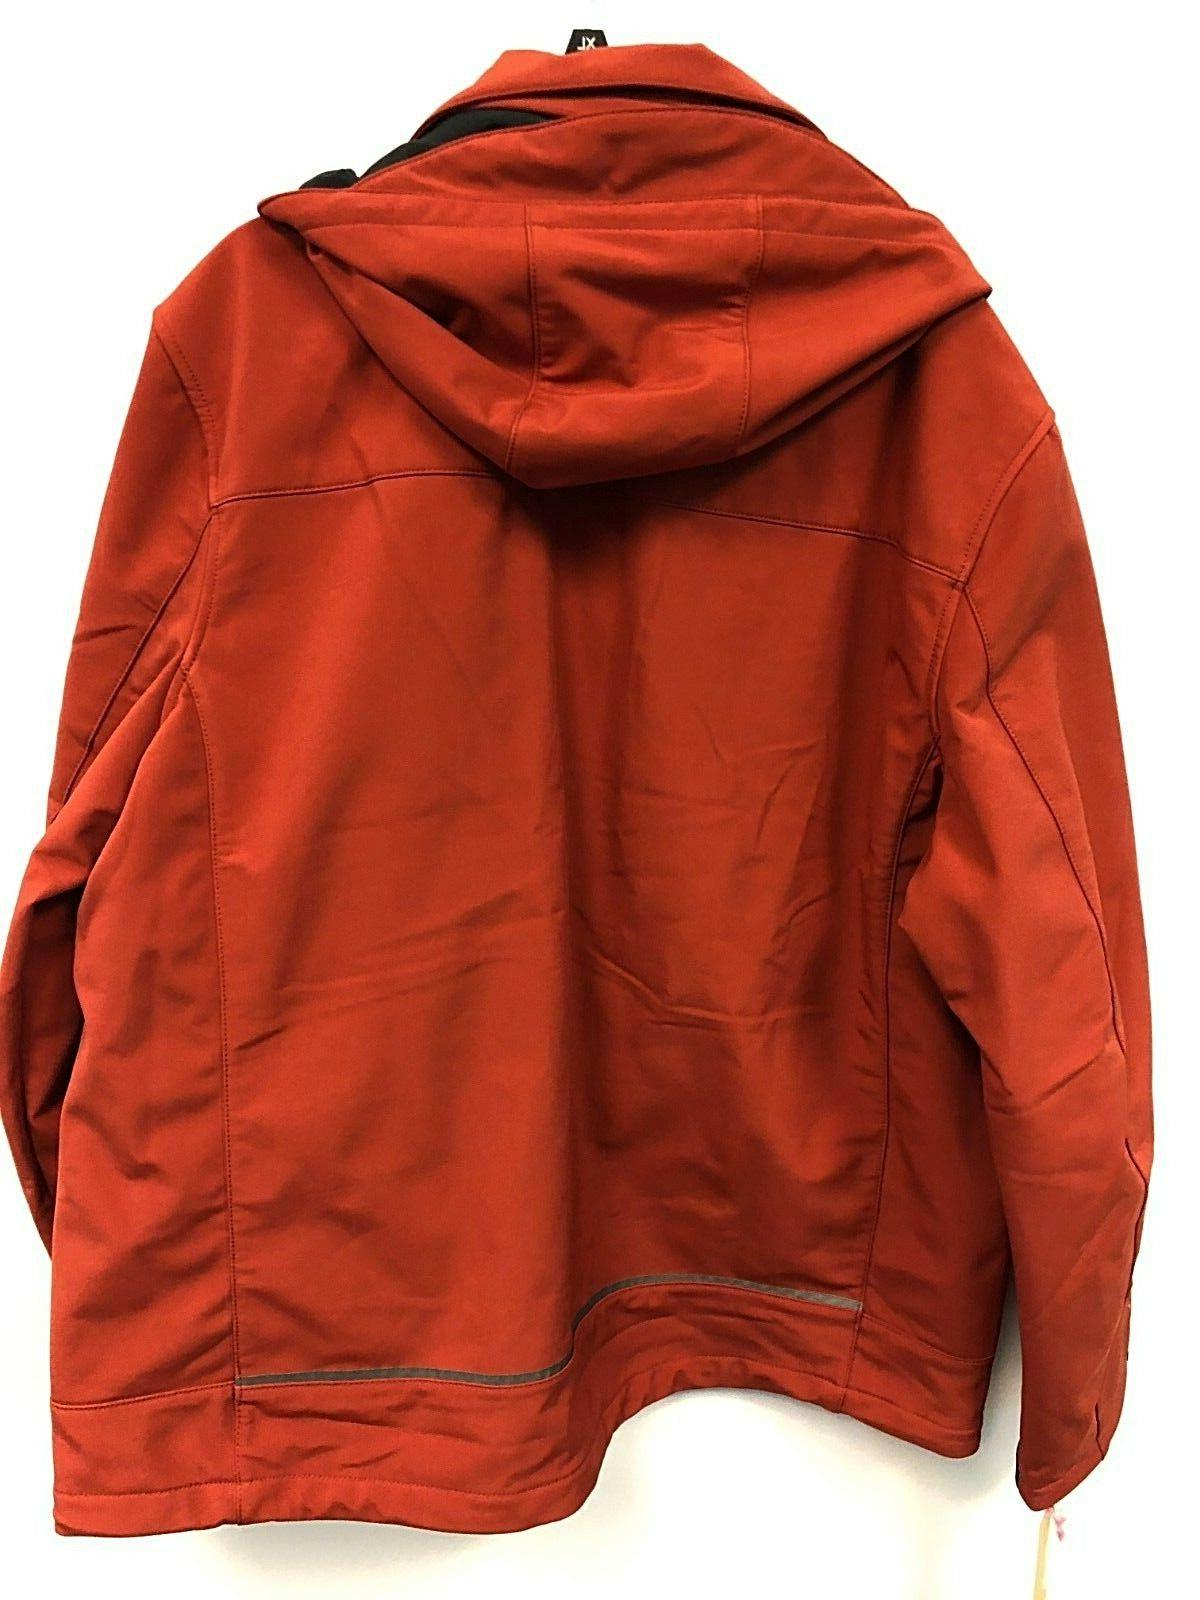 NWTS Michael 2XB Outerwear Coat